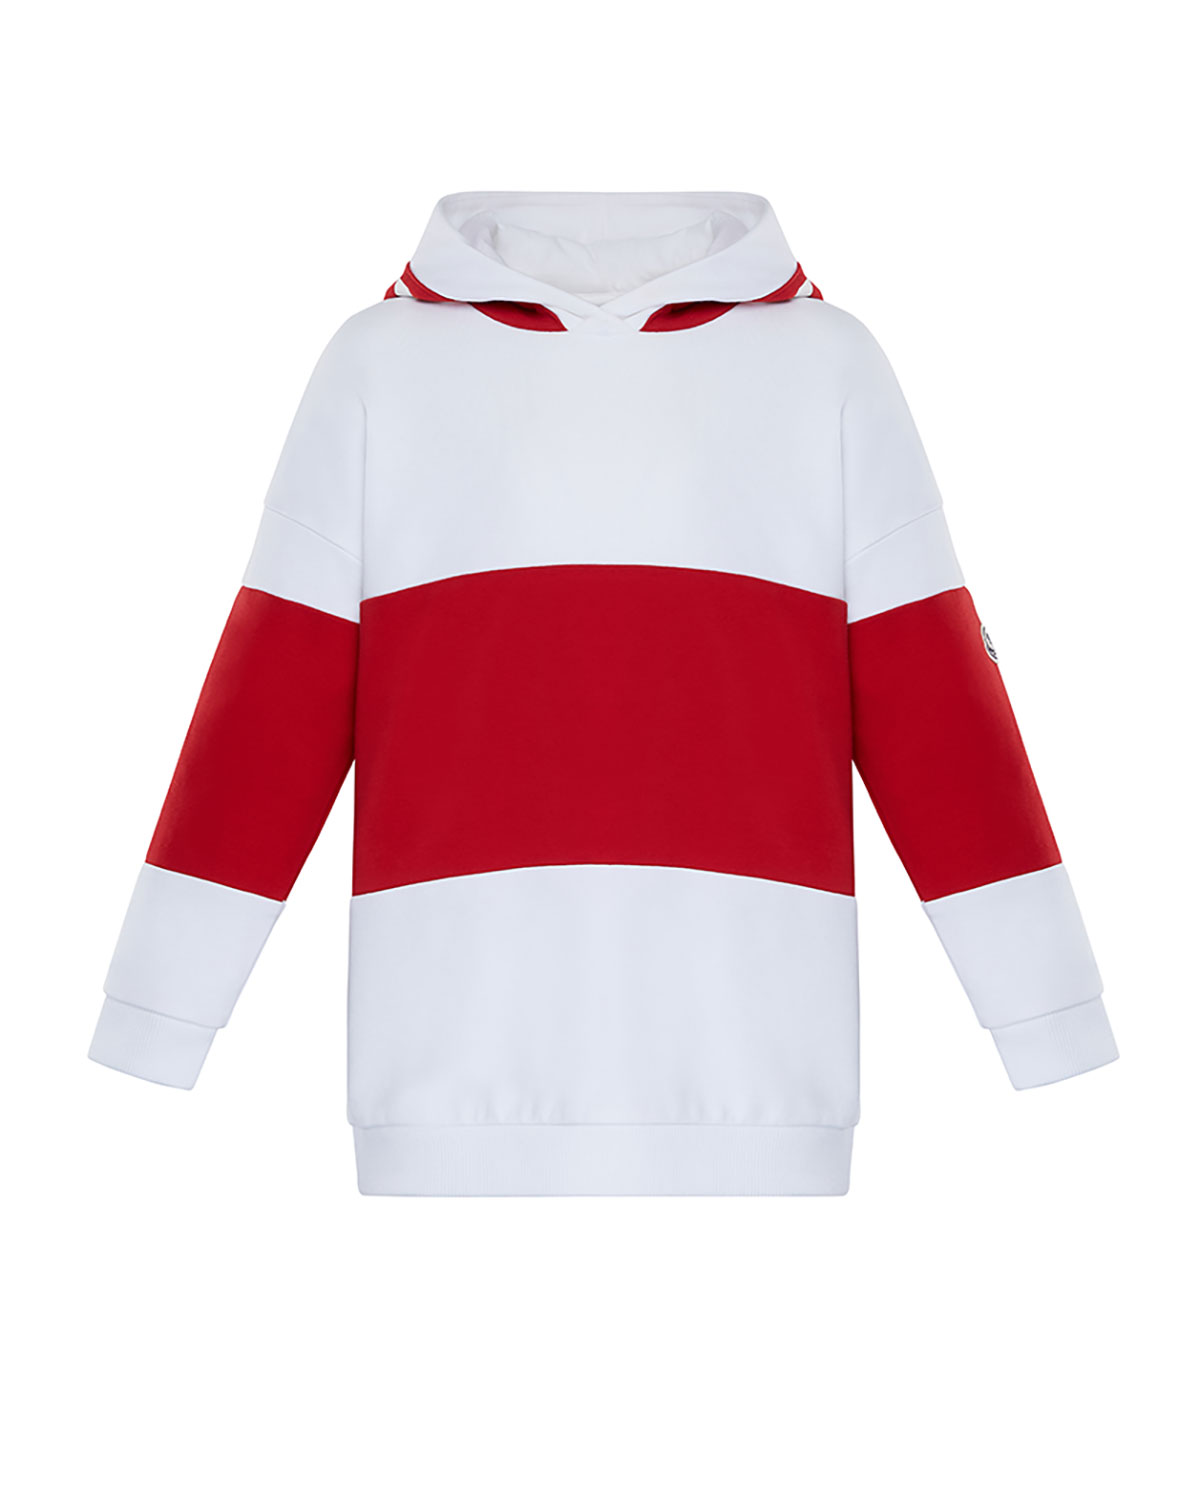 Moncler GIRL'S CONTRAST LOGO PRINTED PULLOVER HOODIE